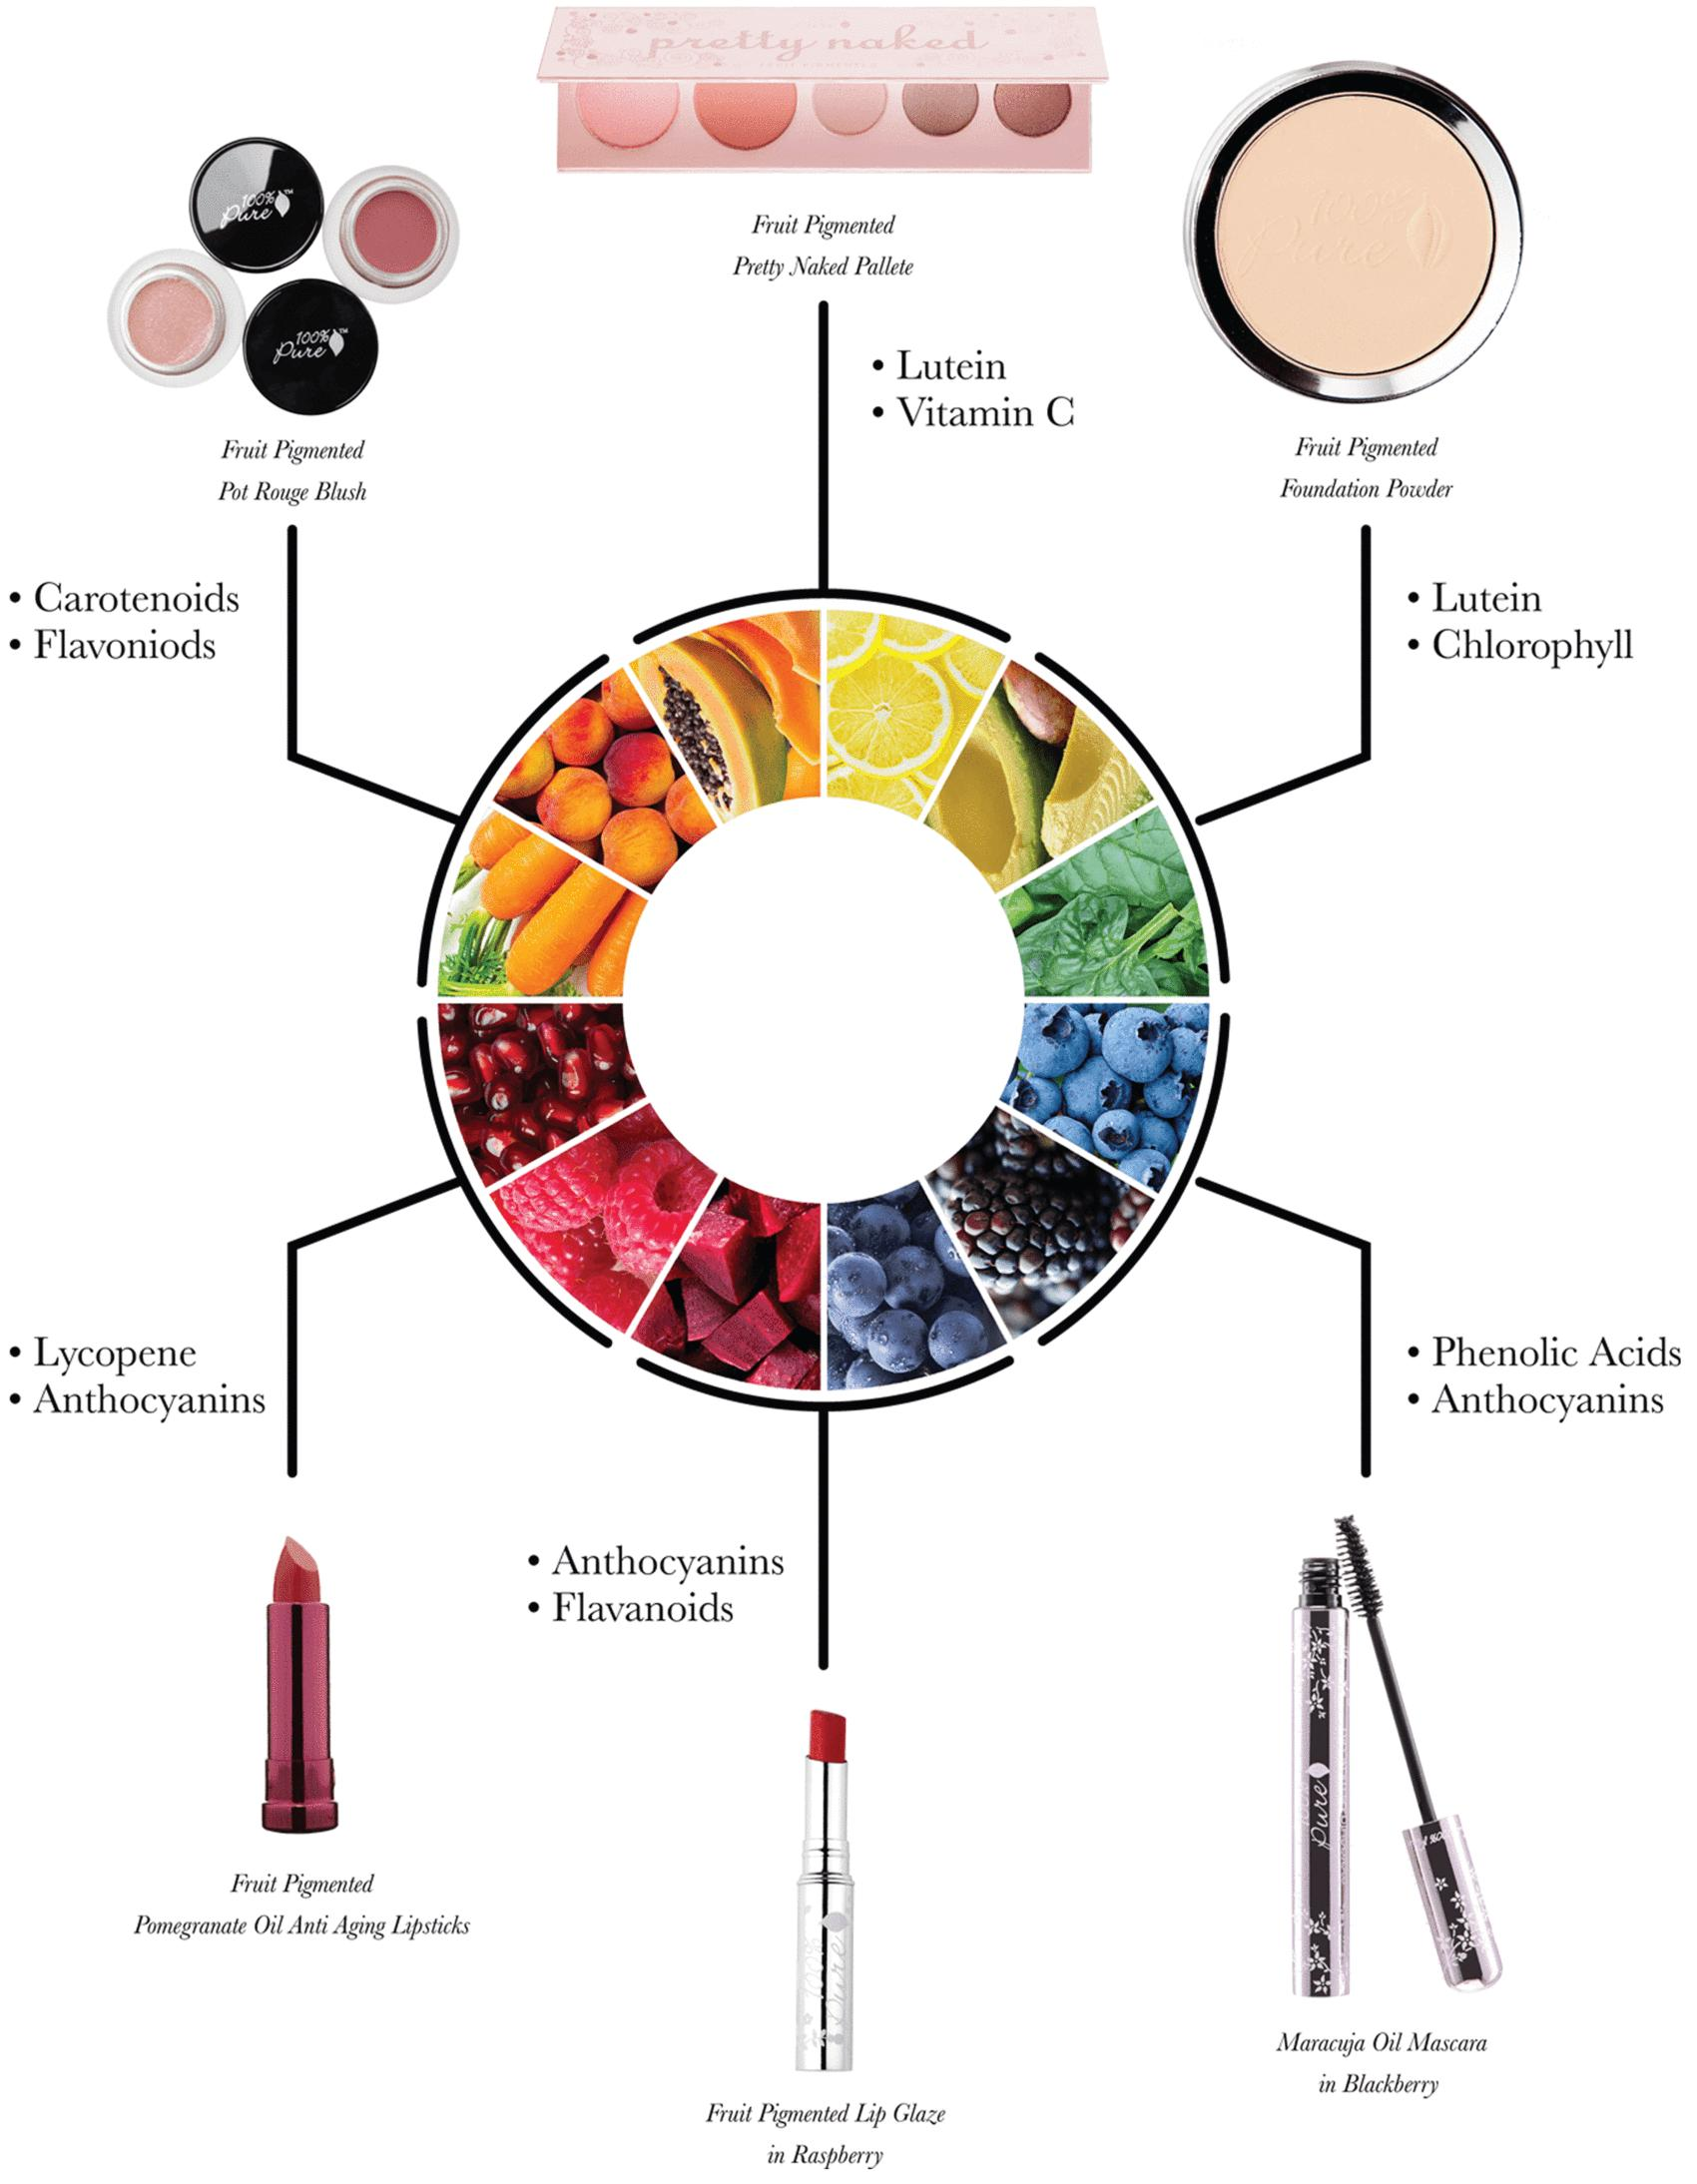 100% PURE Fruit Pigmented Cosmetics